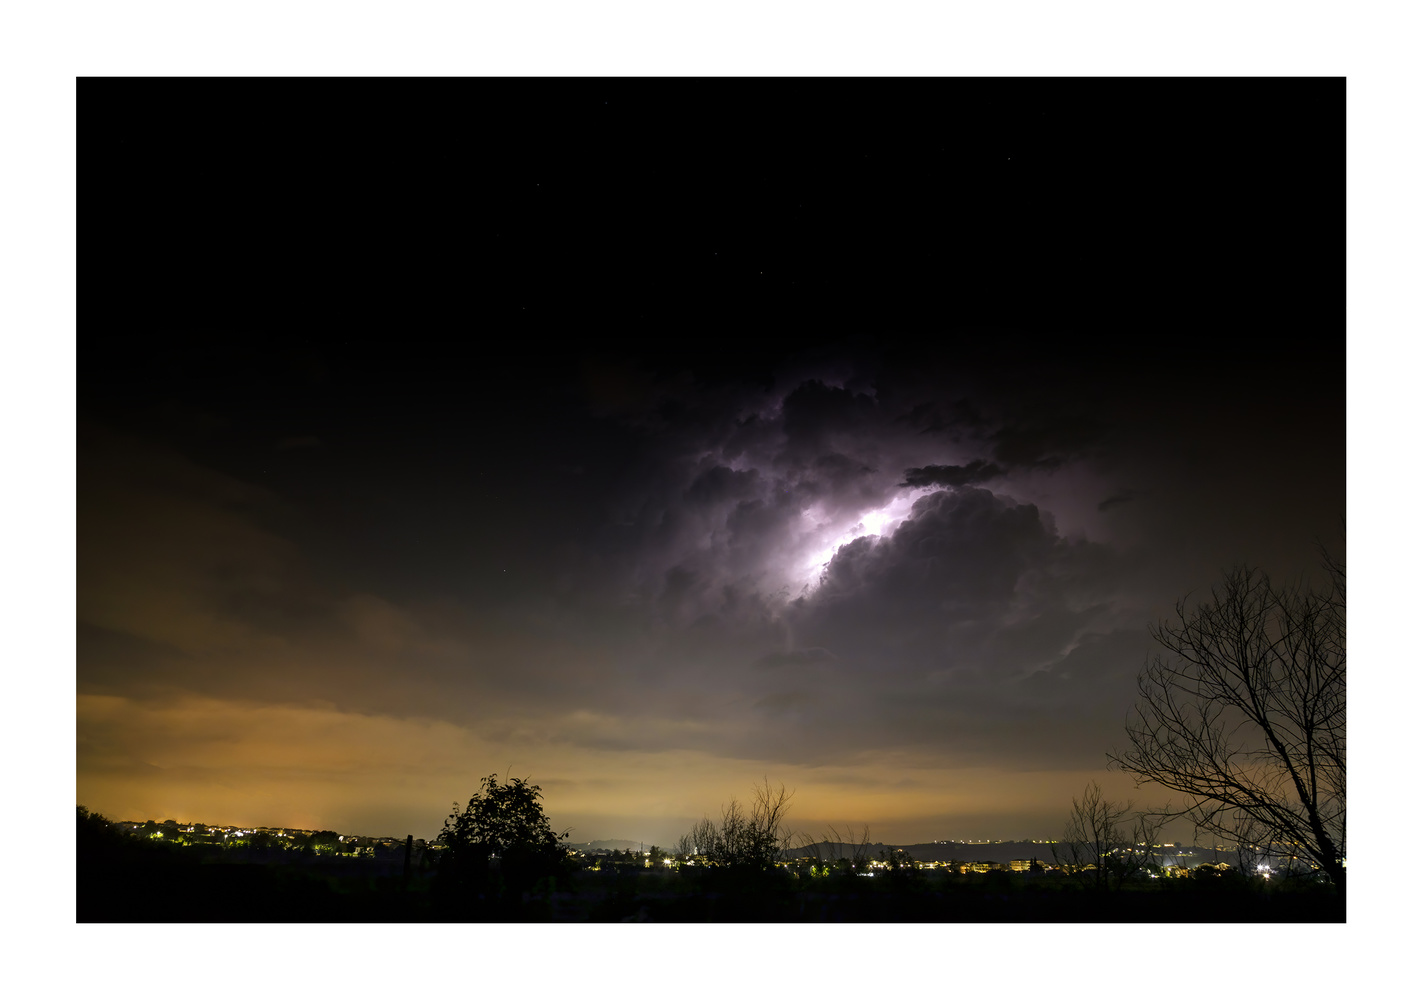 In cloud lightning by Clare Lusher